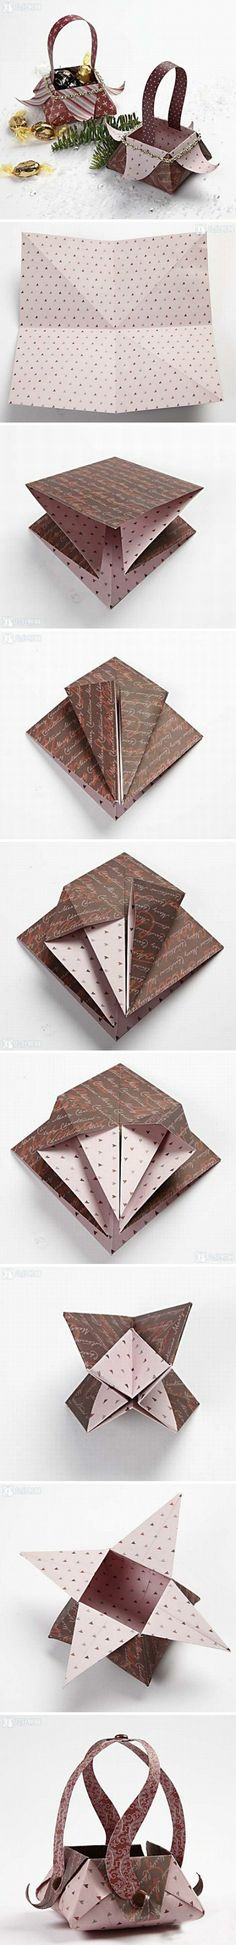 New Diy Paper Basket Weaving Ideas Ideas Origami And Kirigami, Origami Paper, Oragami, 3d Paper, Paper Crafts, Diy Crafts, Paper Boxes, Paper Basket Weaving, Papier Diy